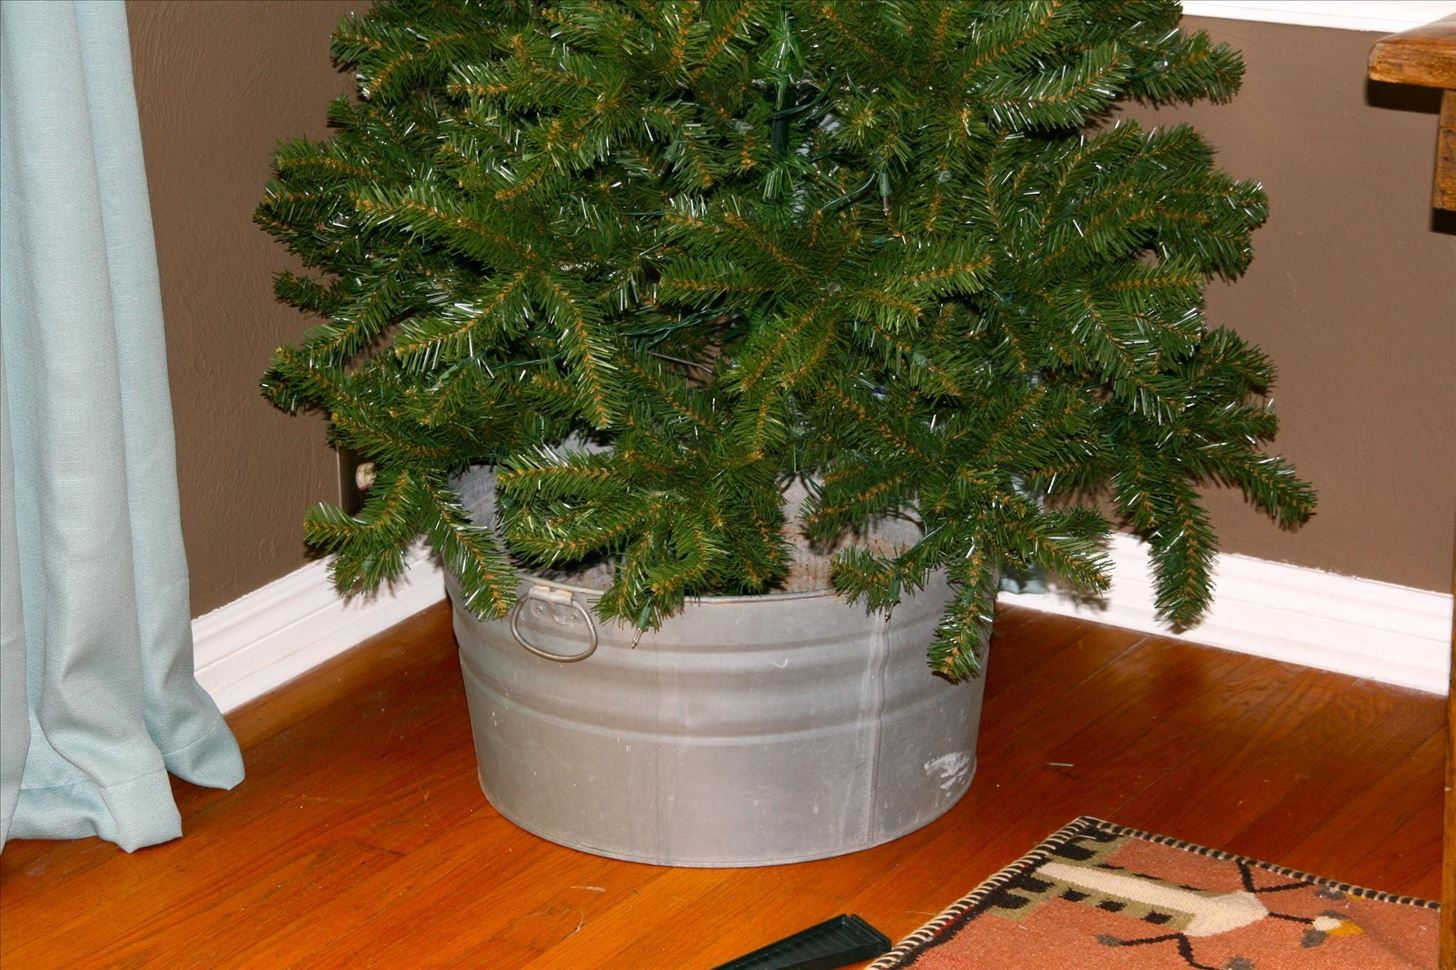 How to get a christmas tree and how to take care of it